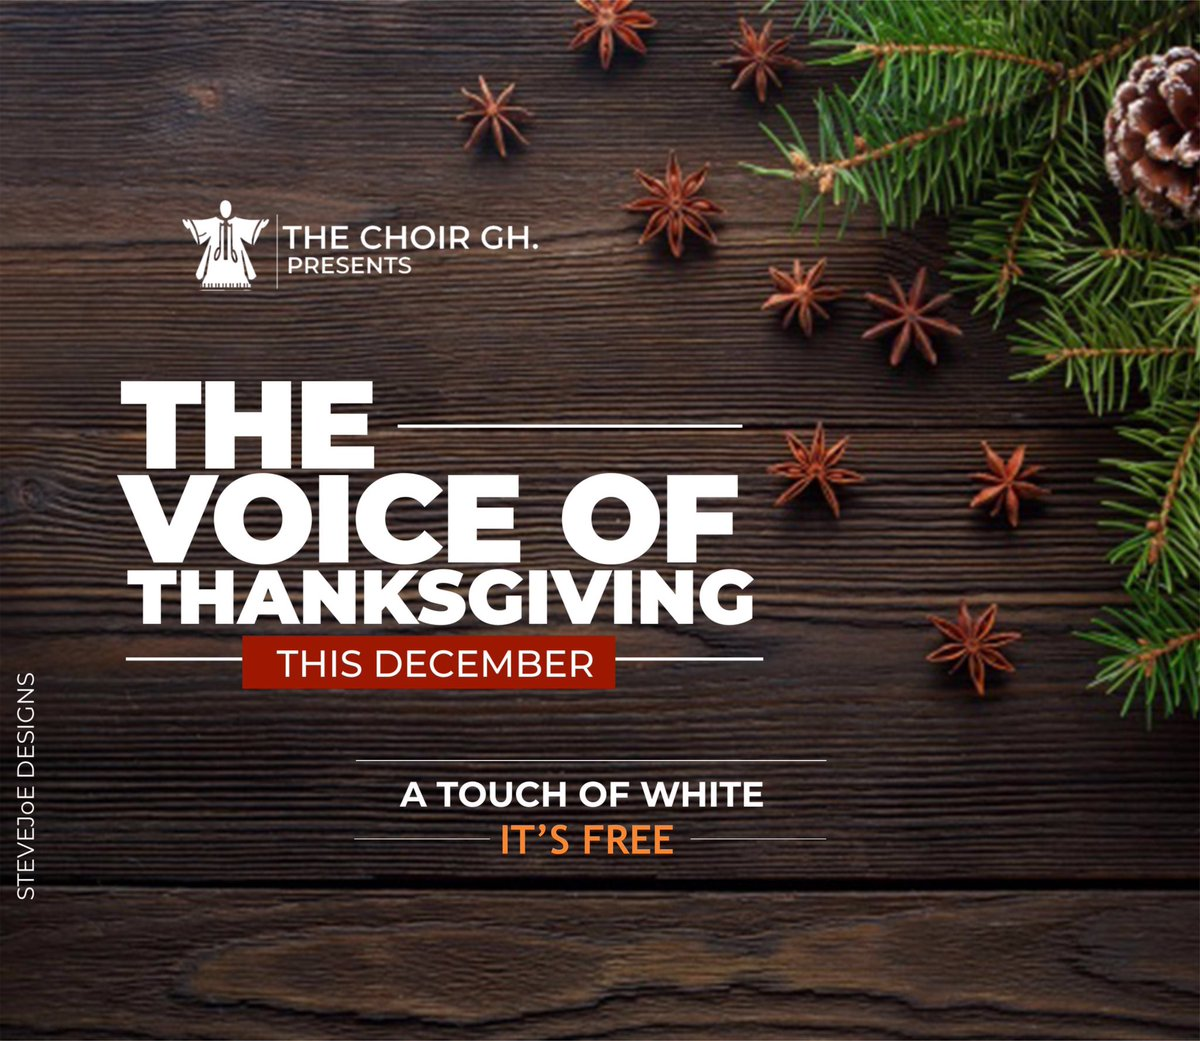 Our Voices , Our Thanksgiving!!! THE VOICE OF THANKSGIVING By THE CHOIR, GHThis December! Free Admission !A Touch of White!